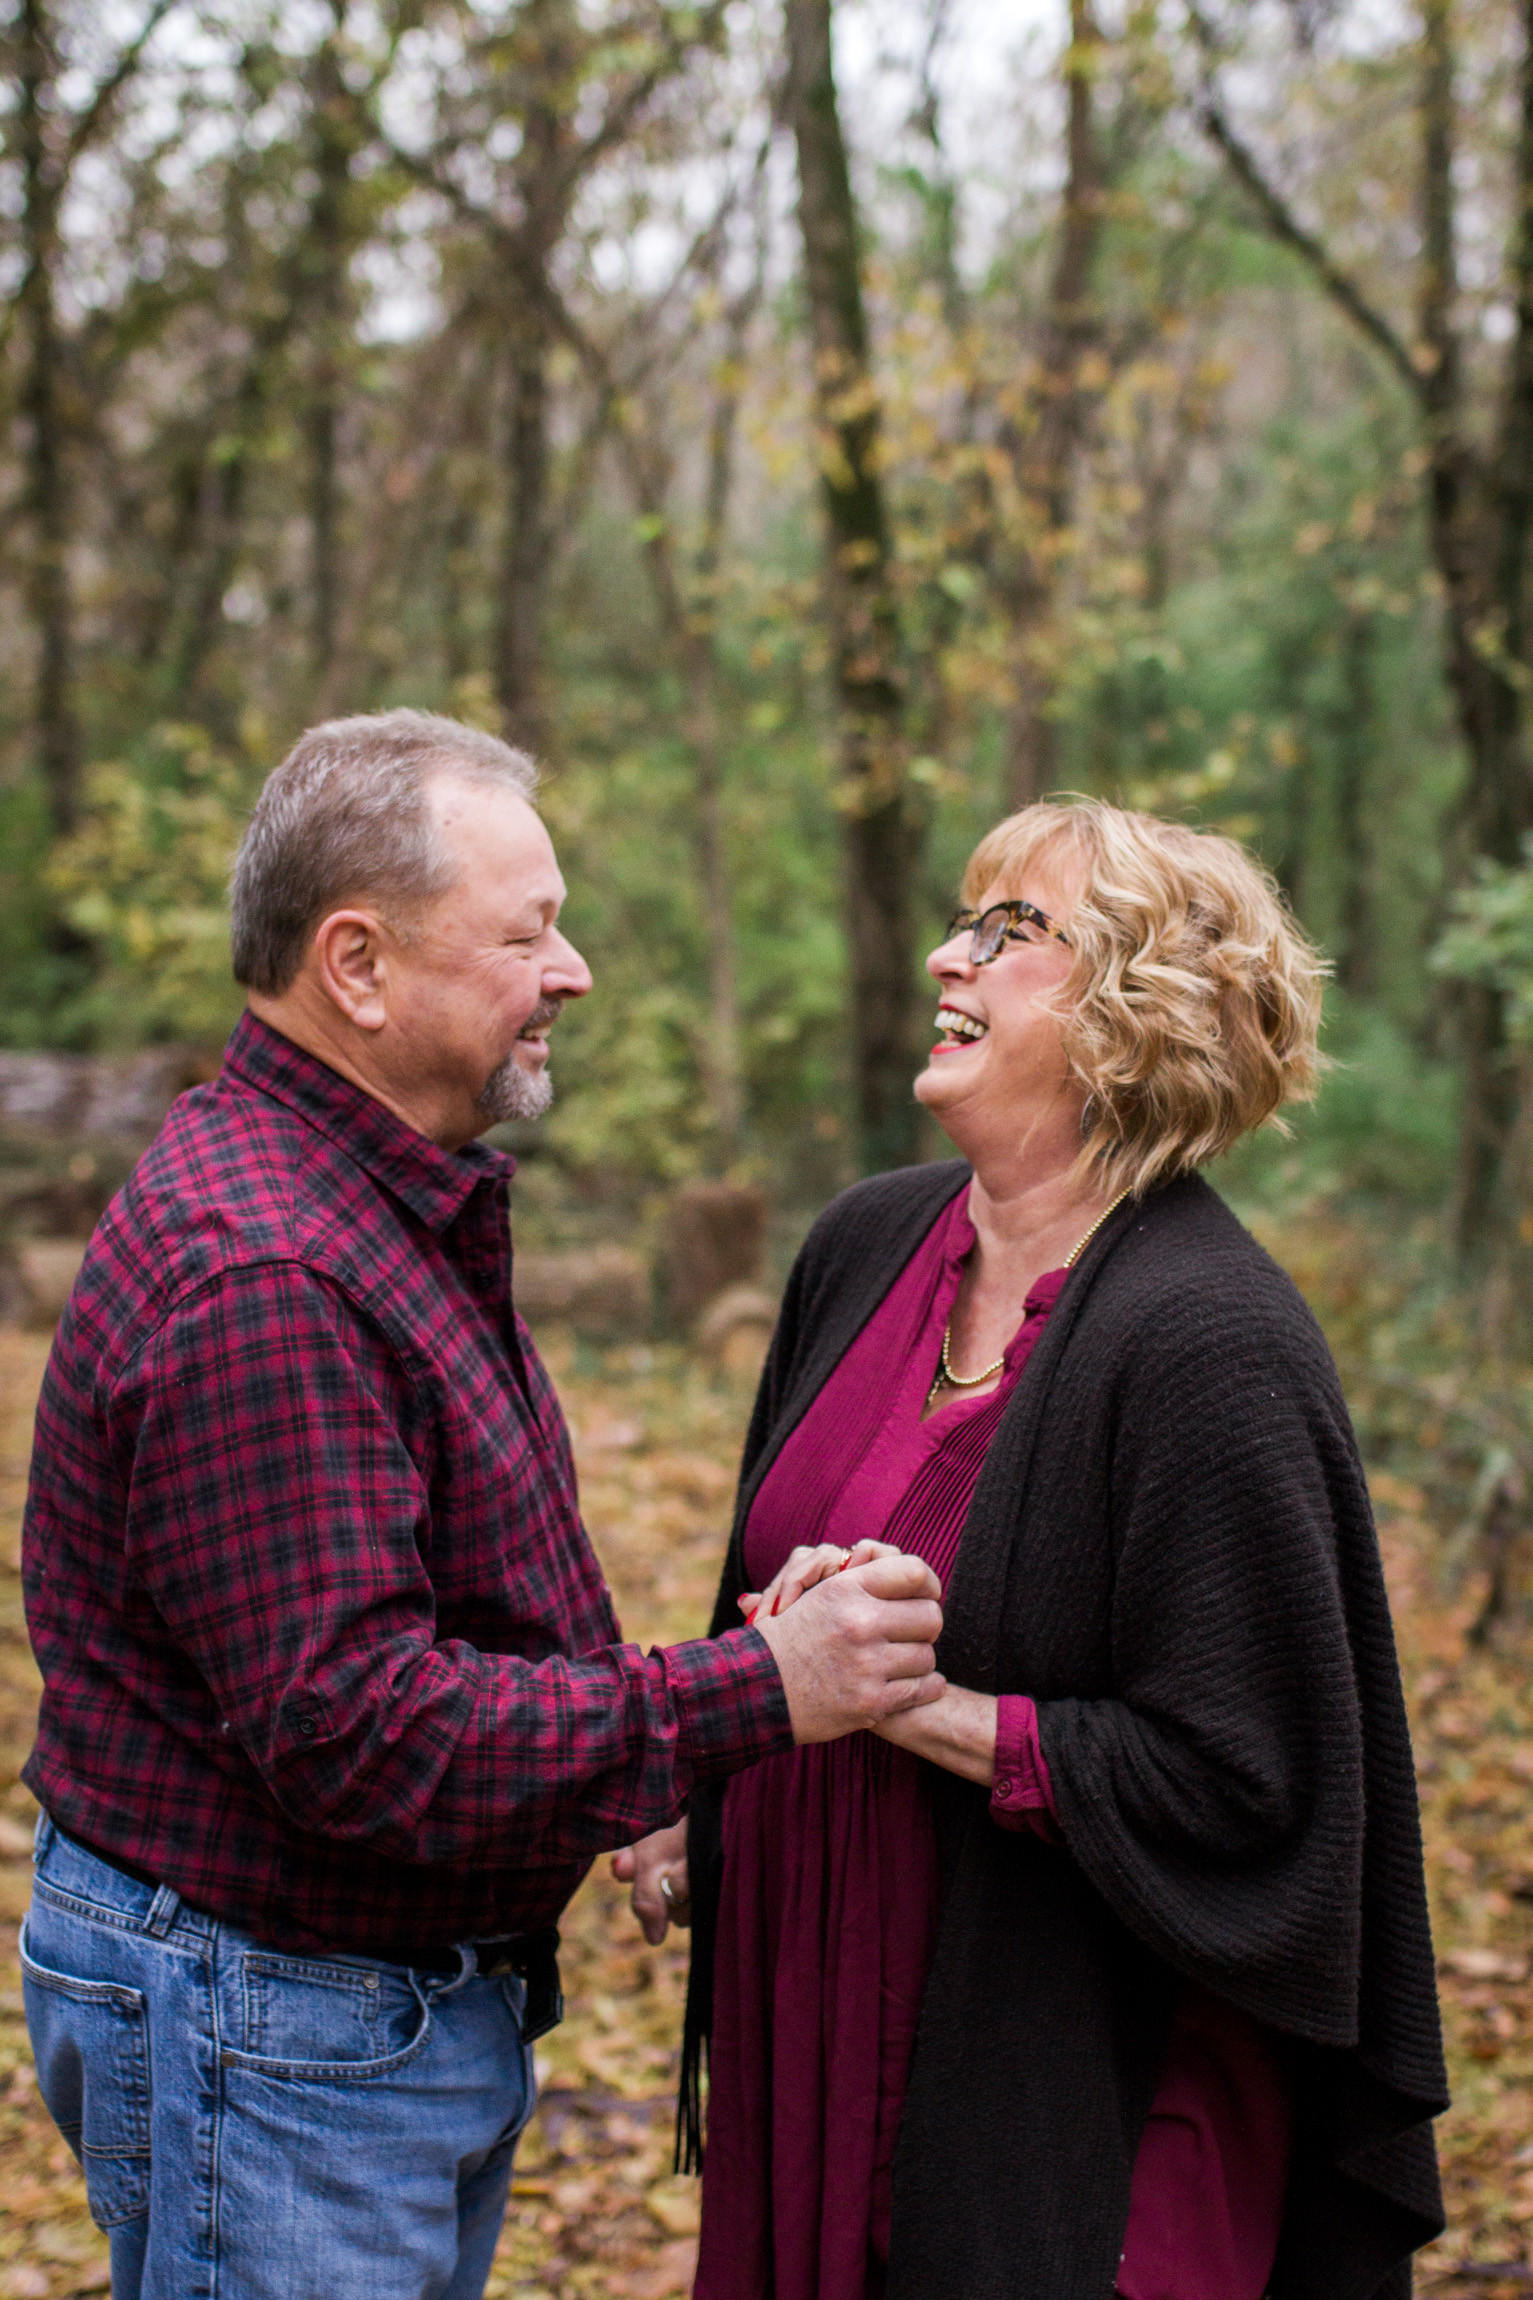 Kansas City lifestyle photographer, Kansas City family photographer, extended family session, fall family photos in the woods, older couple holding hands, grandparents portrait